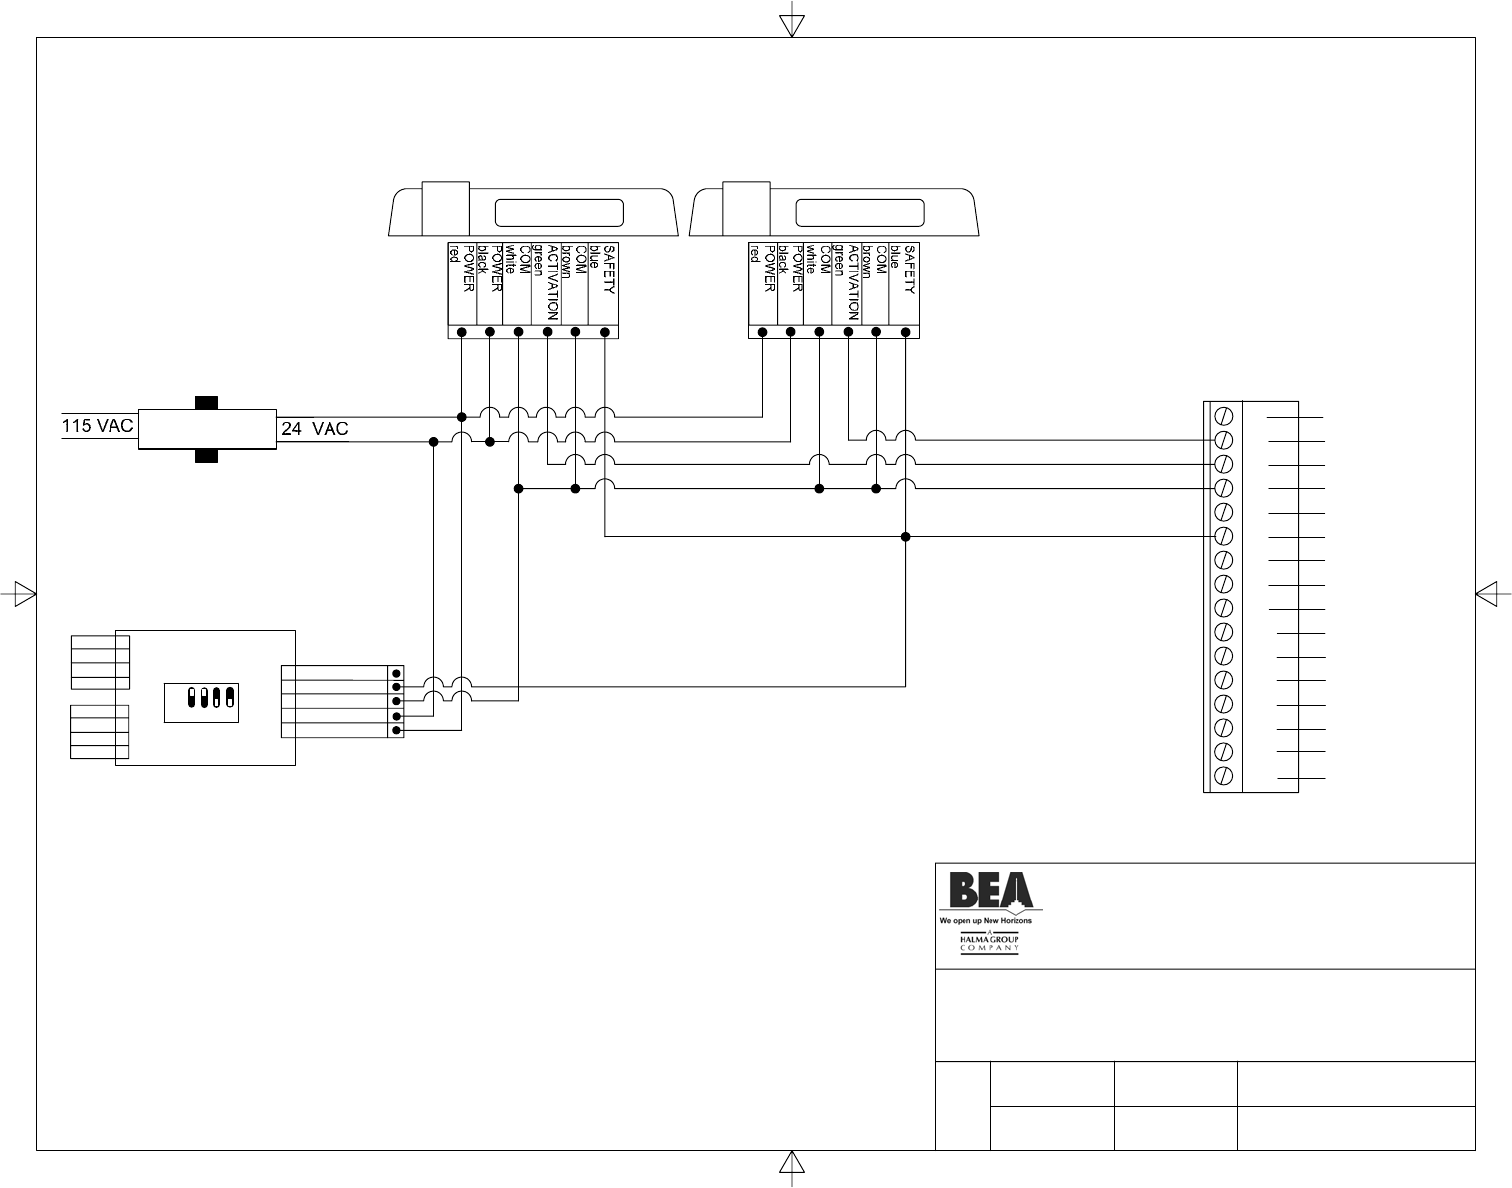 dodge wiring diagrams free wiring diagrams weebly com bea 80.0091.02, c2150 title: horton c2150 control box with ...